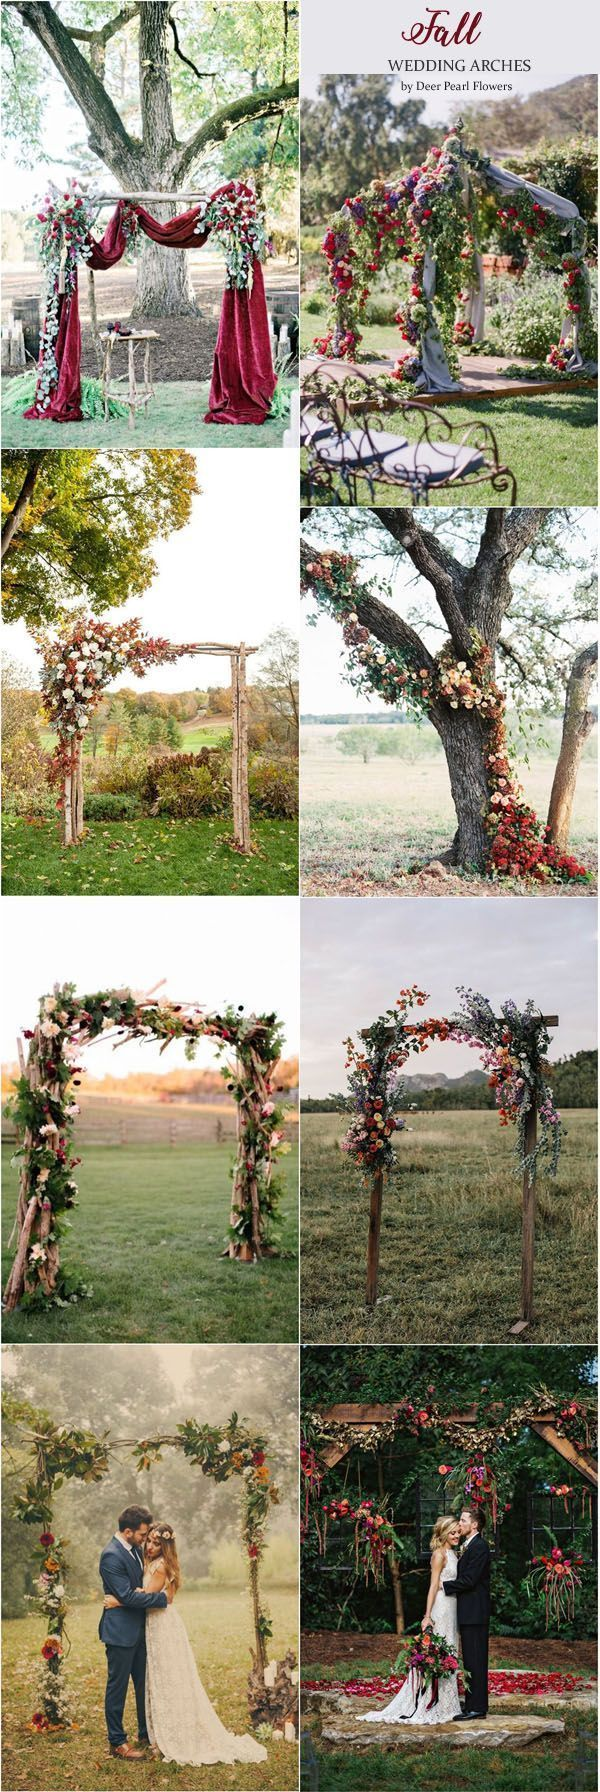 Wedding gate decoration ideas  Pin by Codee Coppock on Wedding Ideas  Pinterest  Fall wedding